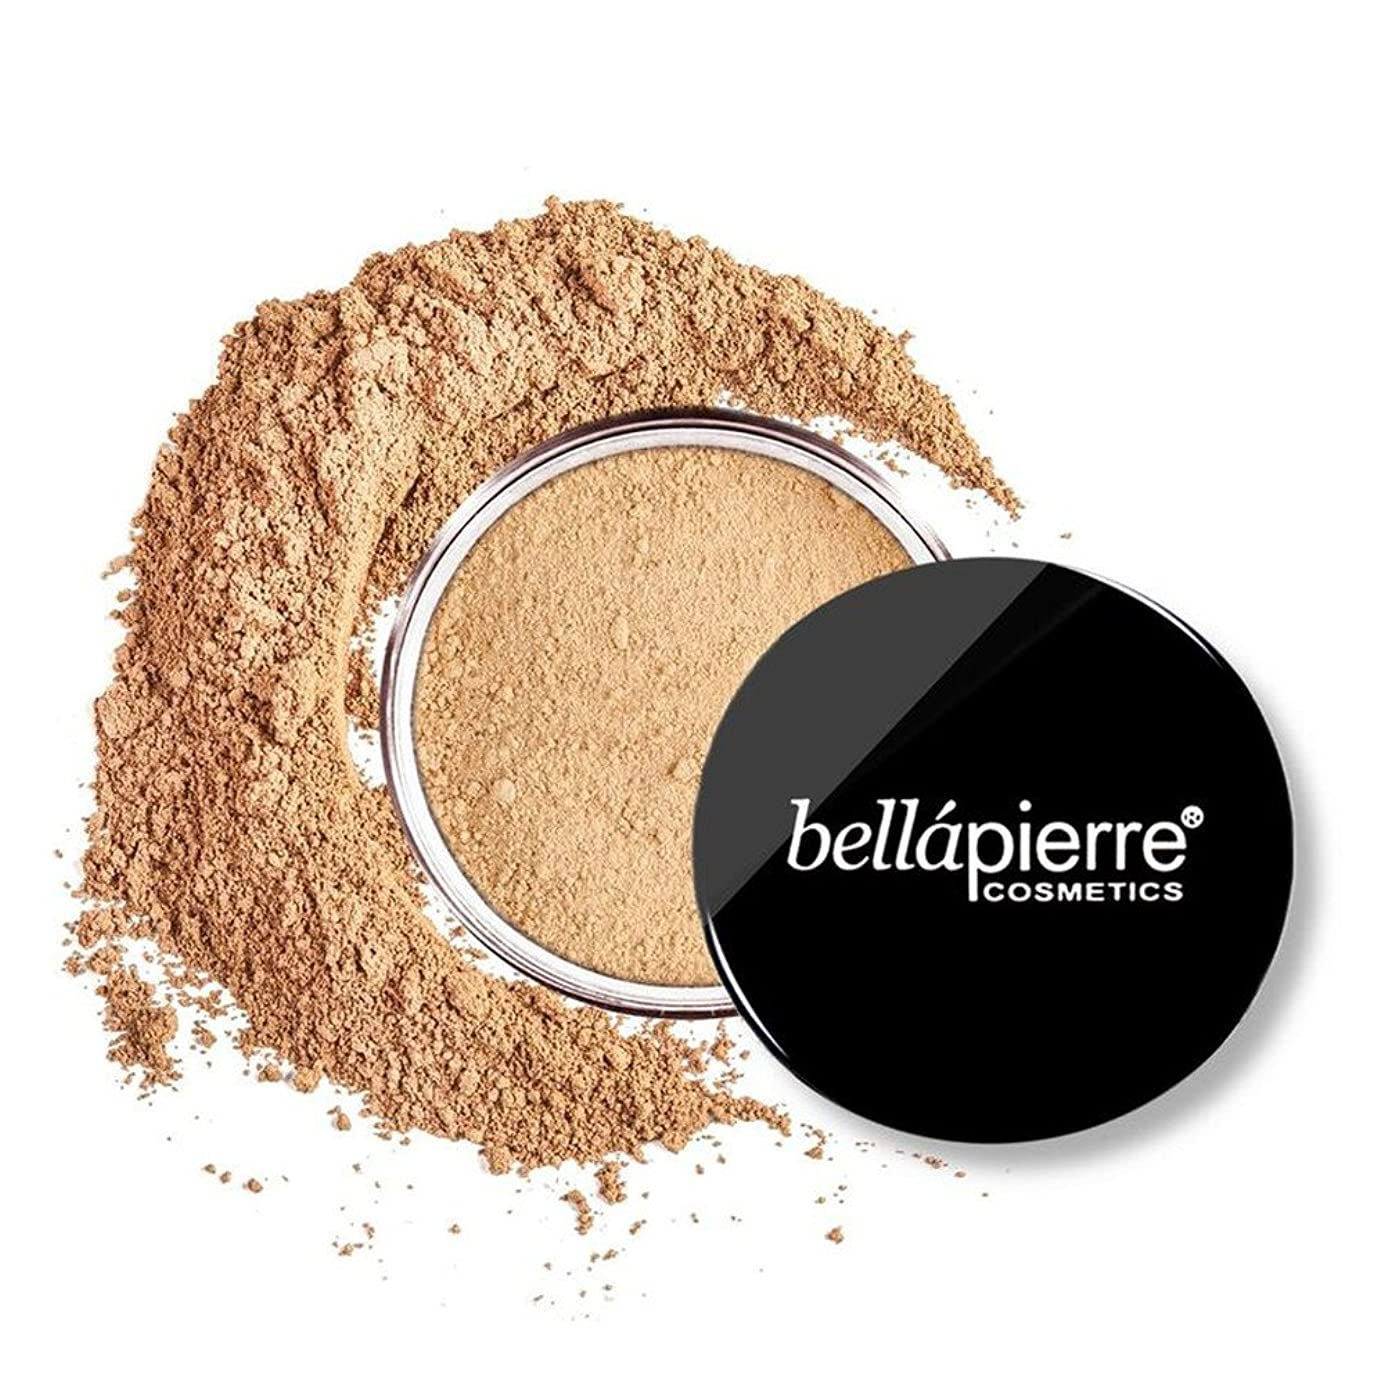 シリアル真似る今までBellapierre Cosmetics Mineral Foundation SPF 15 - # Nutmeg 9g/0.32oz並行輸入品